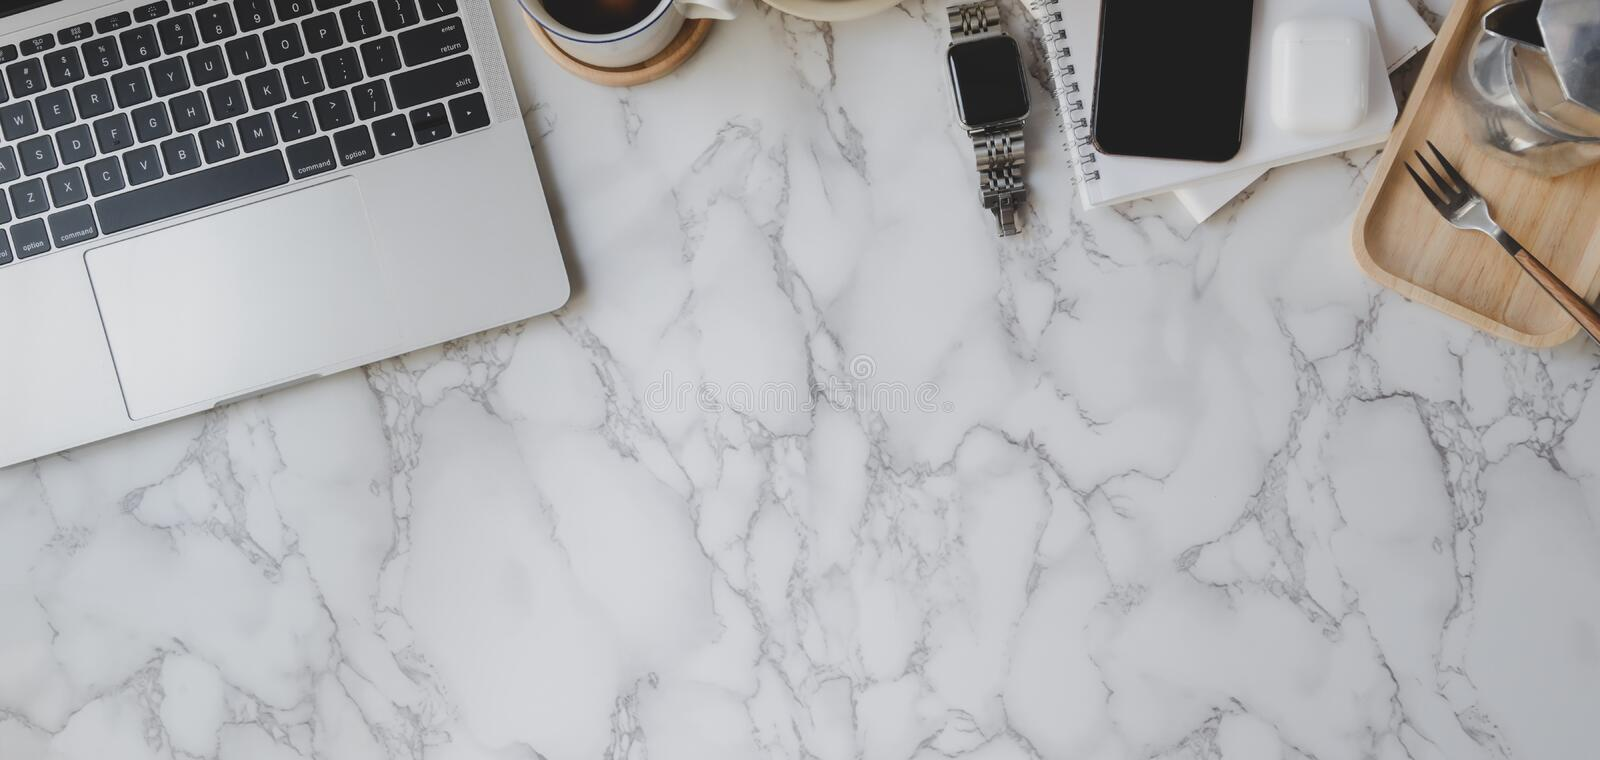 Top view of stylish workspace with laptop computer and office supplies on marble desk royalty free stock photos